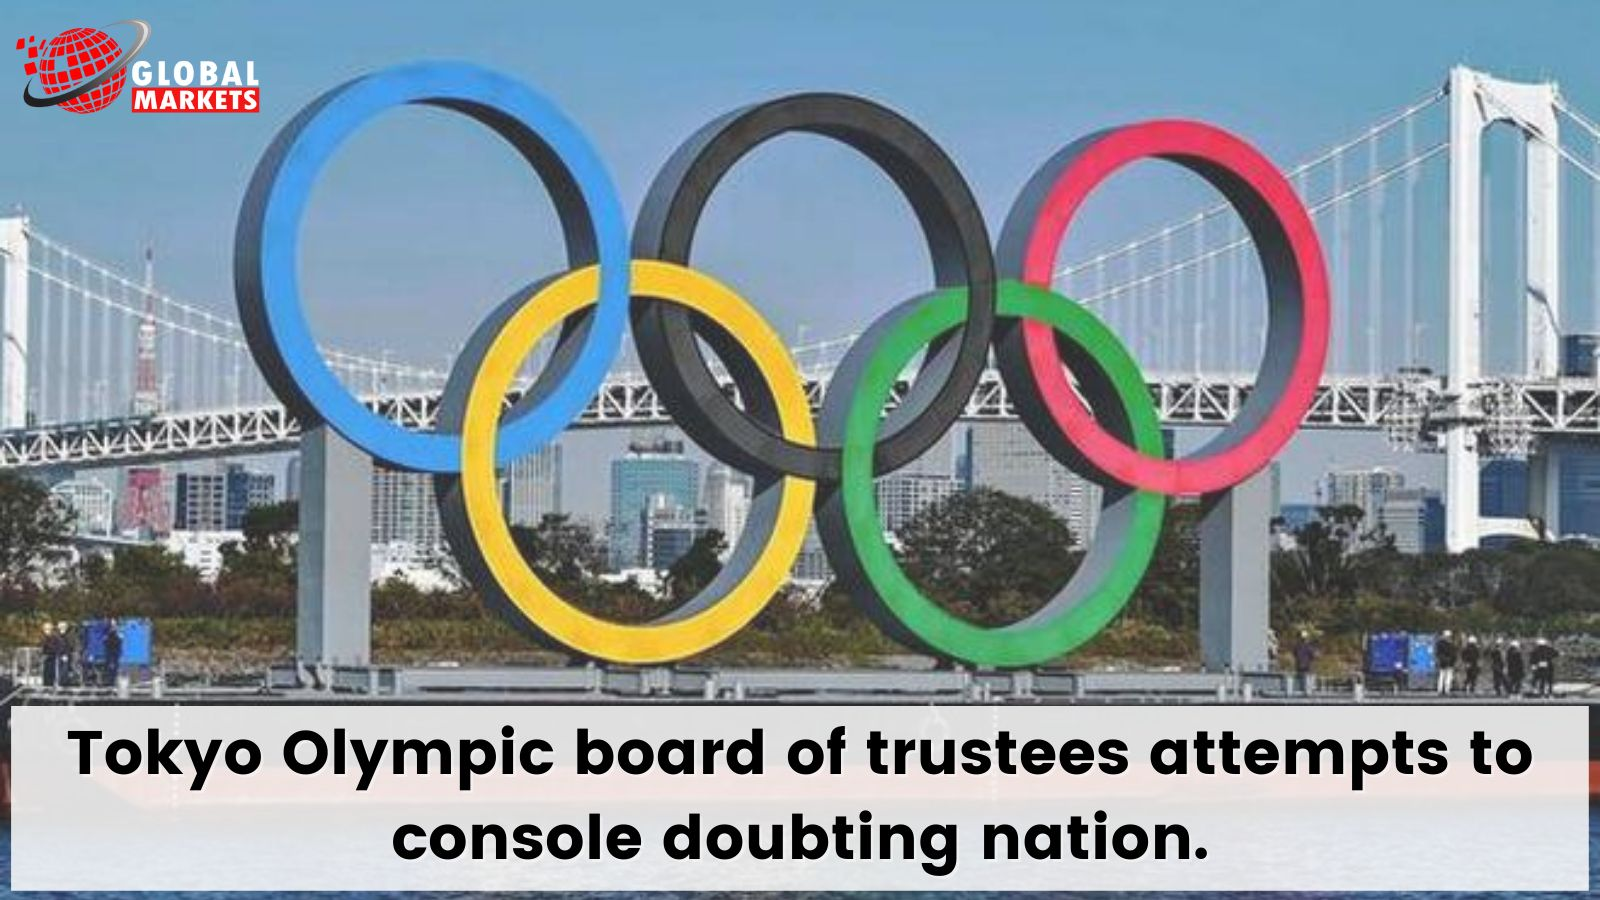 Tokyo Olympic board of trustees attempts to console doubting nation.